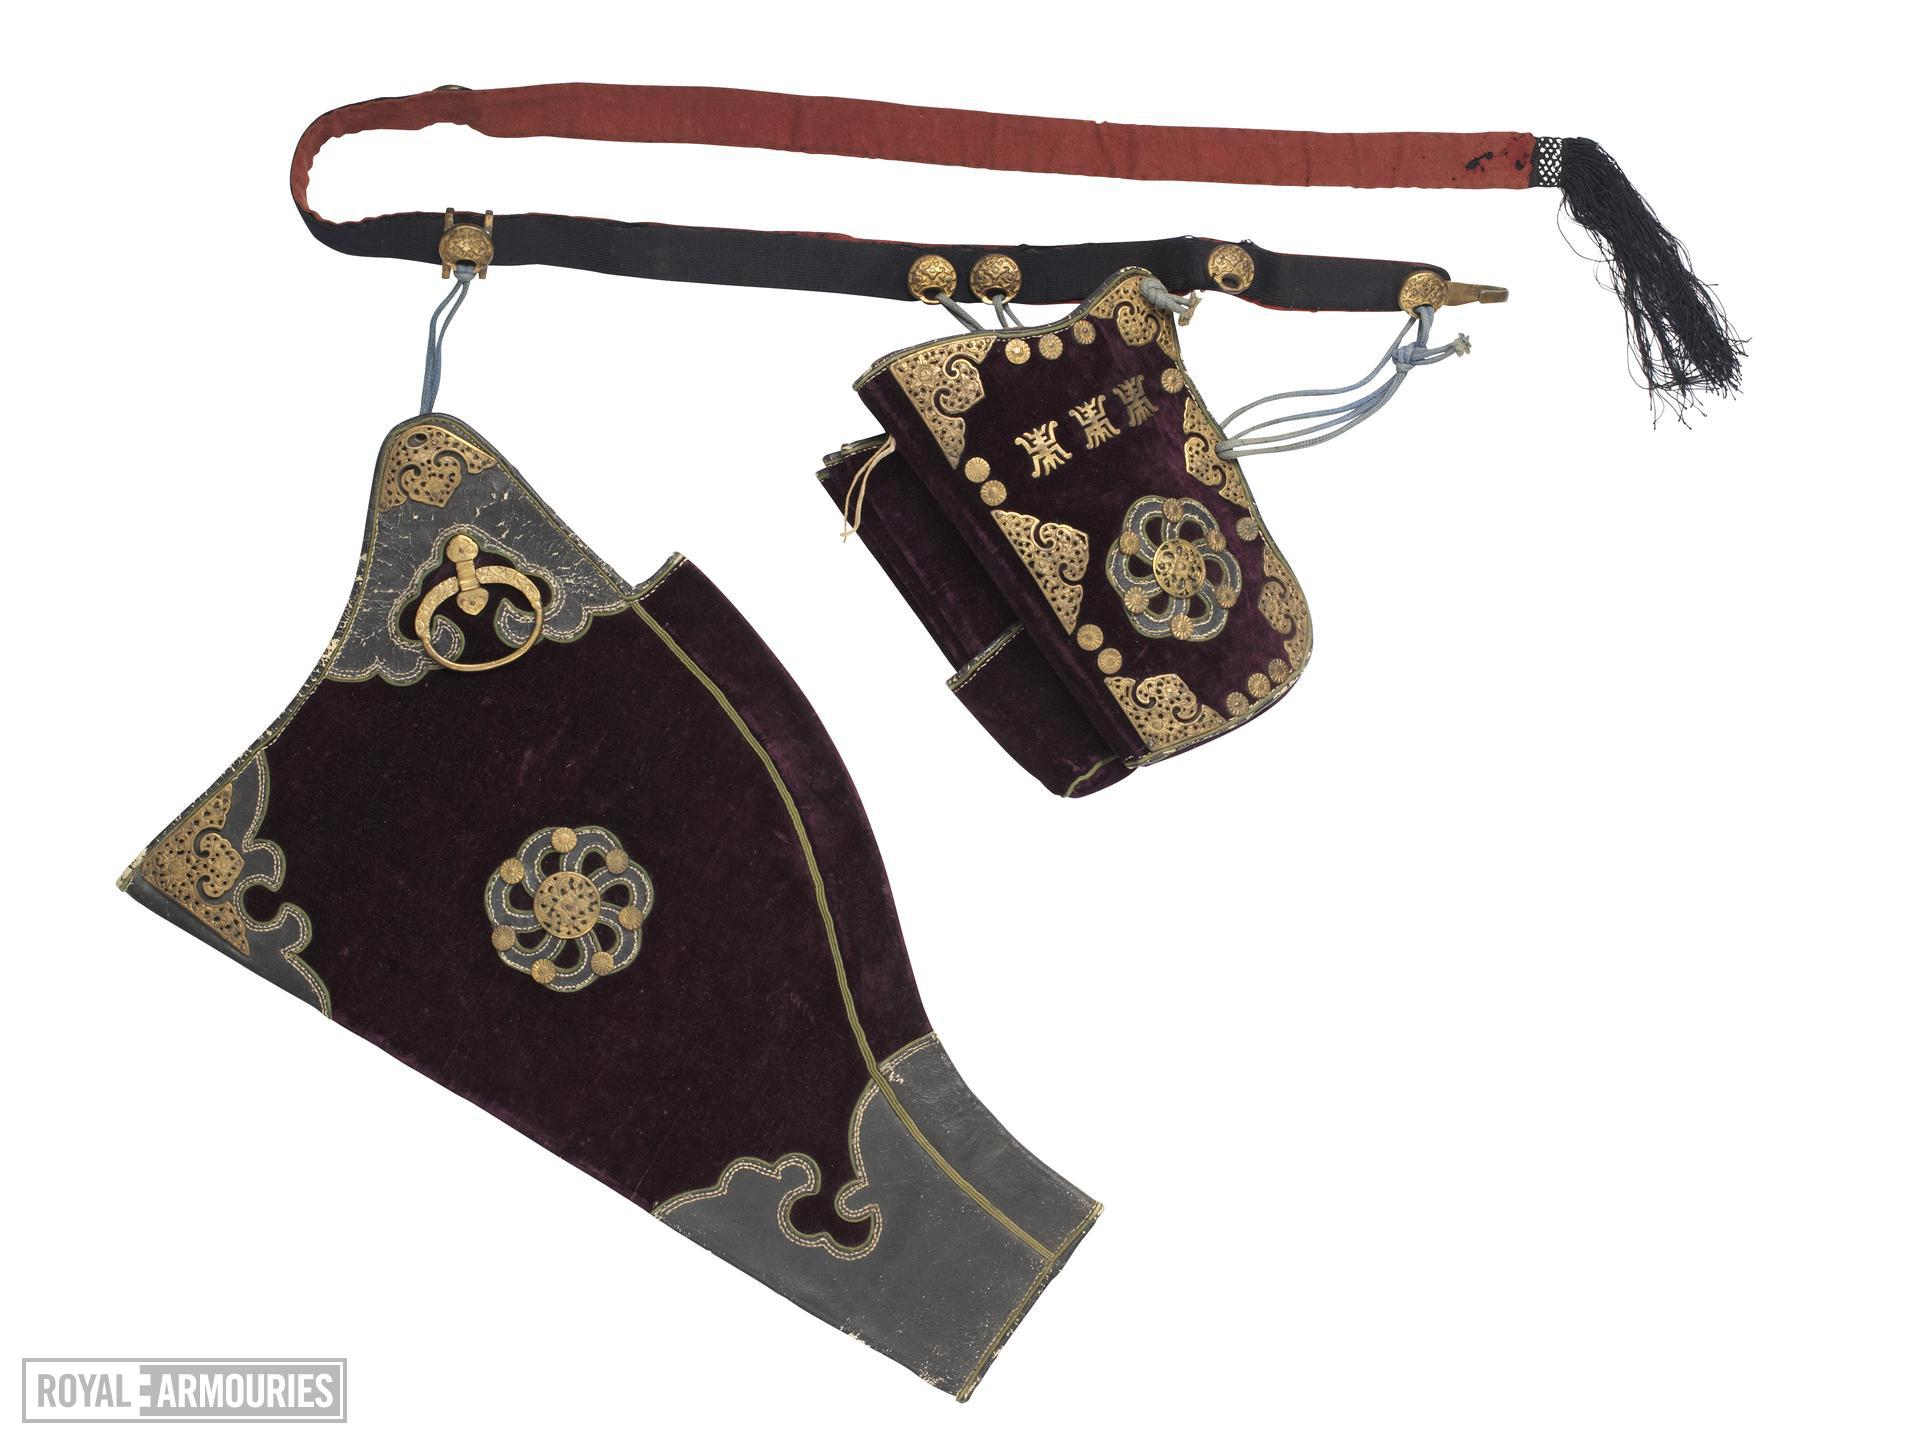 Bowcase and quiver (gongdai and jiantong) of purple velvet